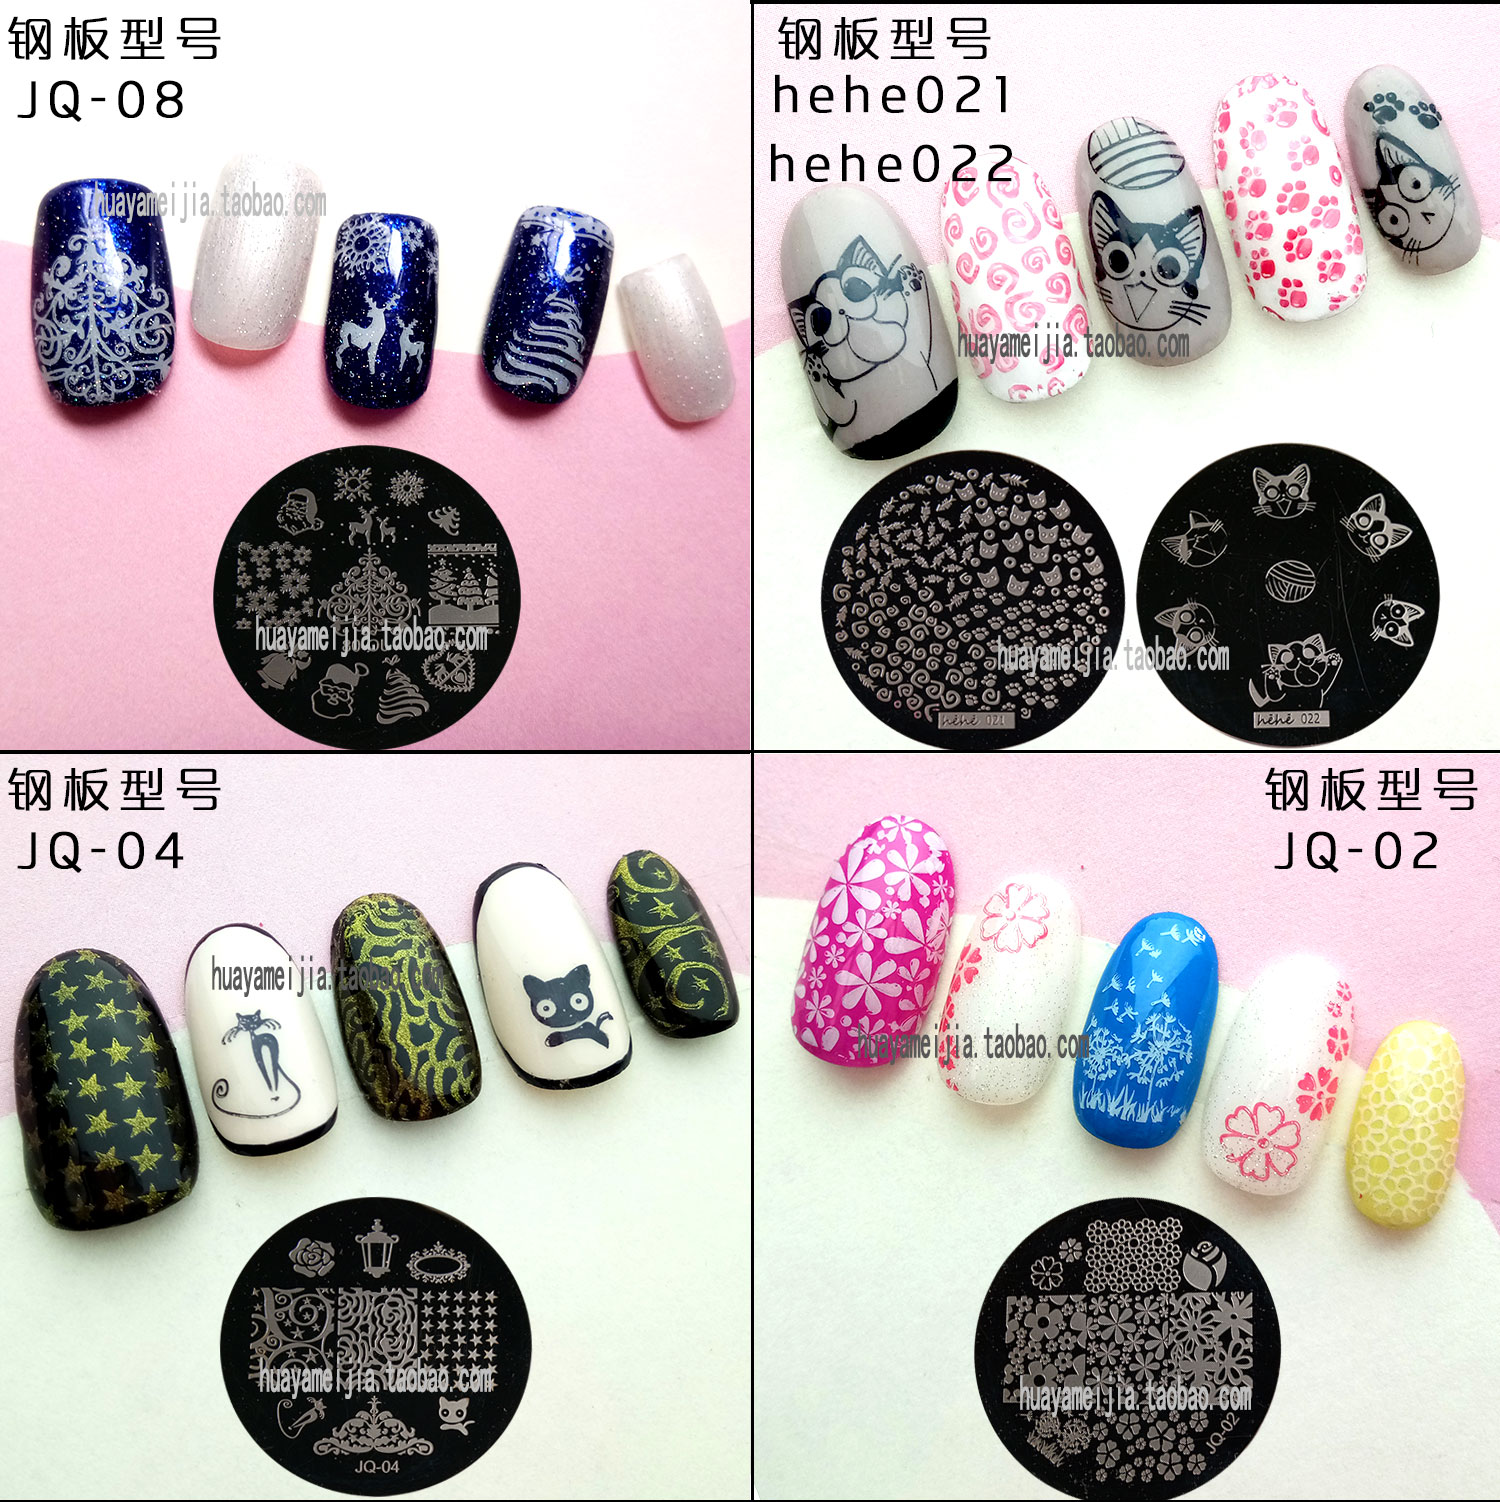 Nail printing plate set of a full set of tool templates, transparent silicone seal, nail polish scraper beginners